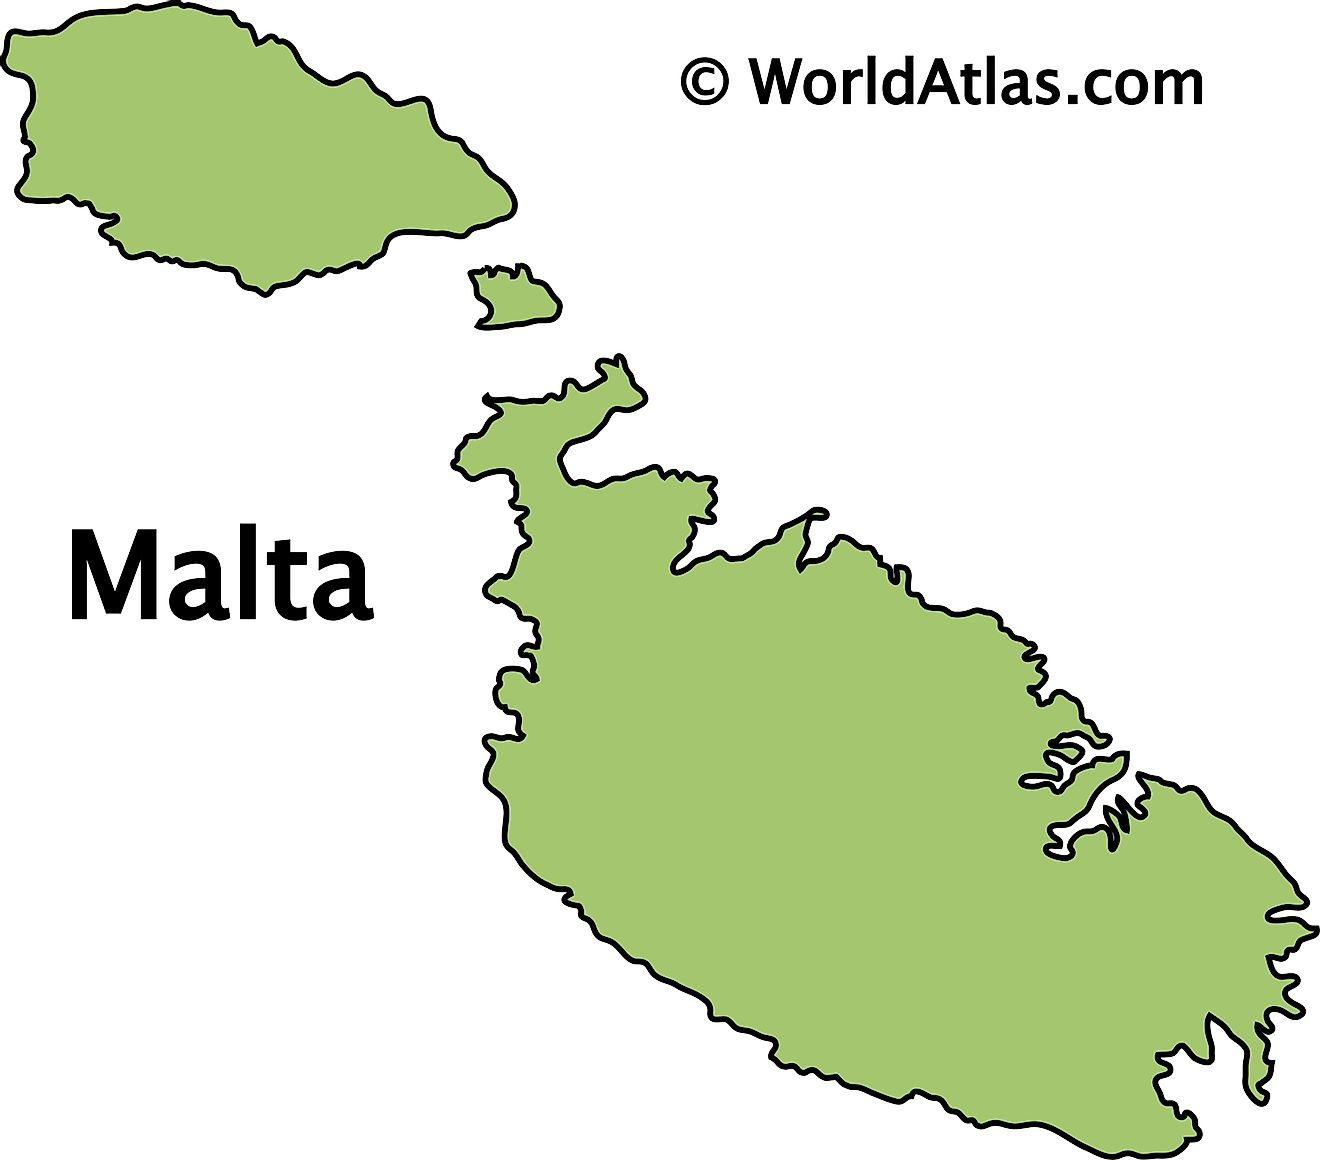 Outline Map of Malta